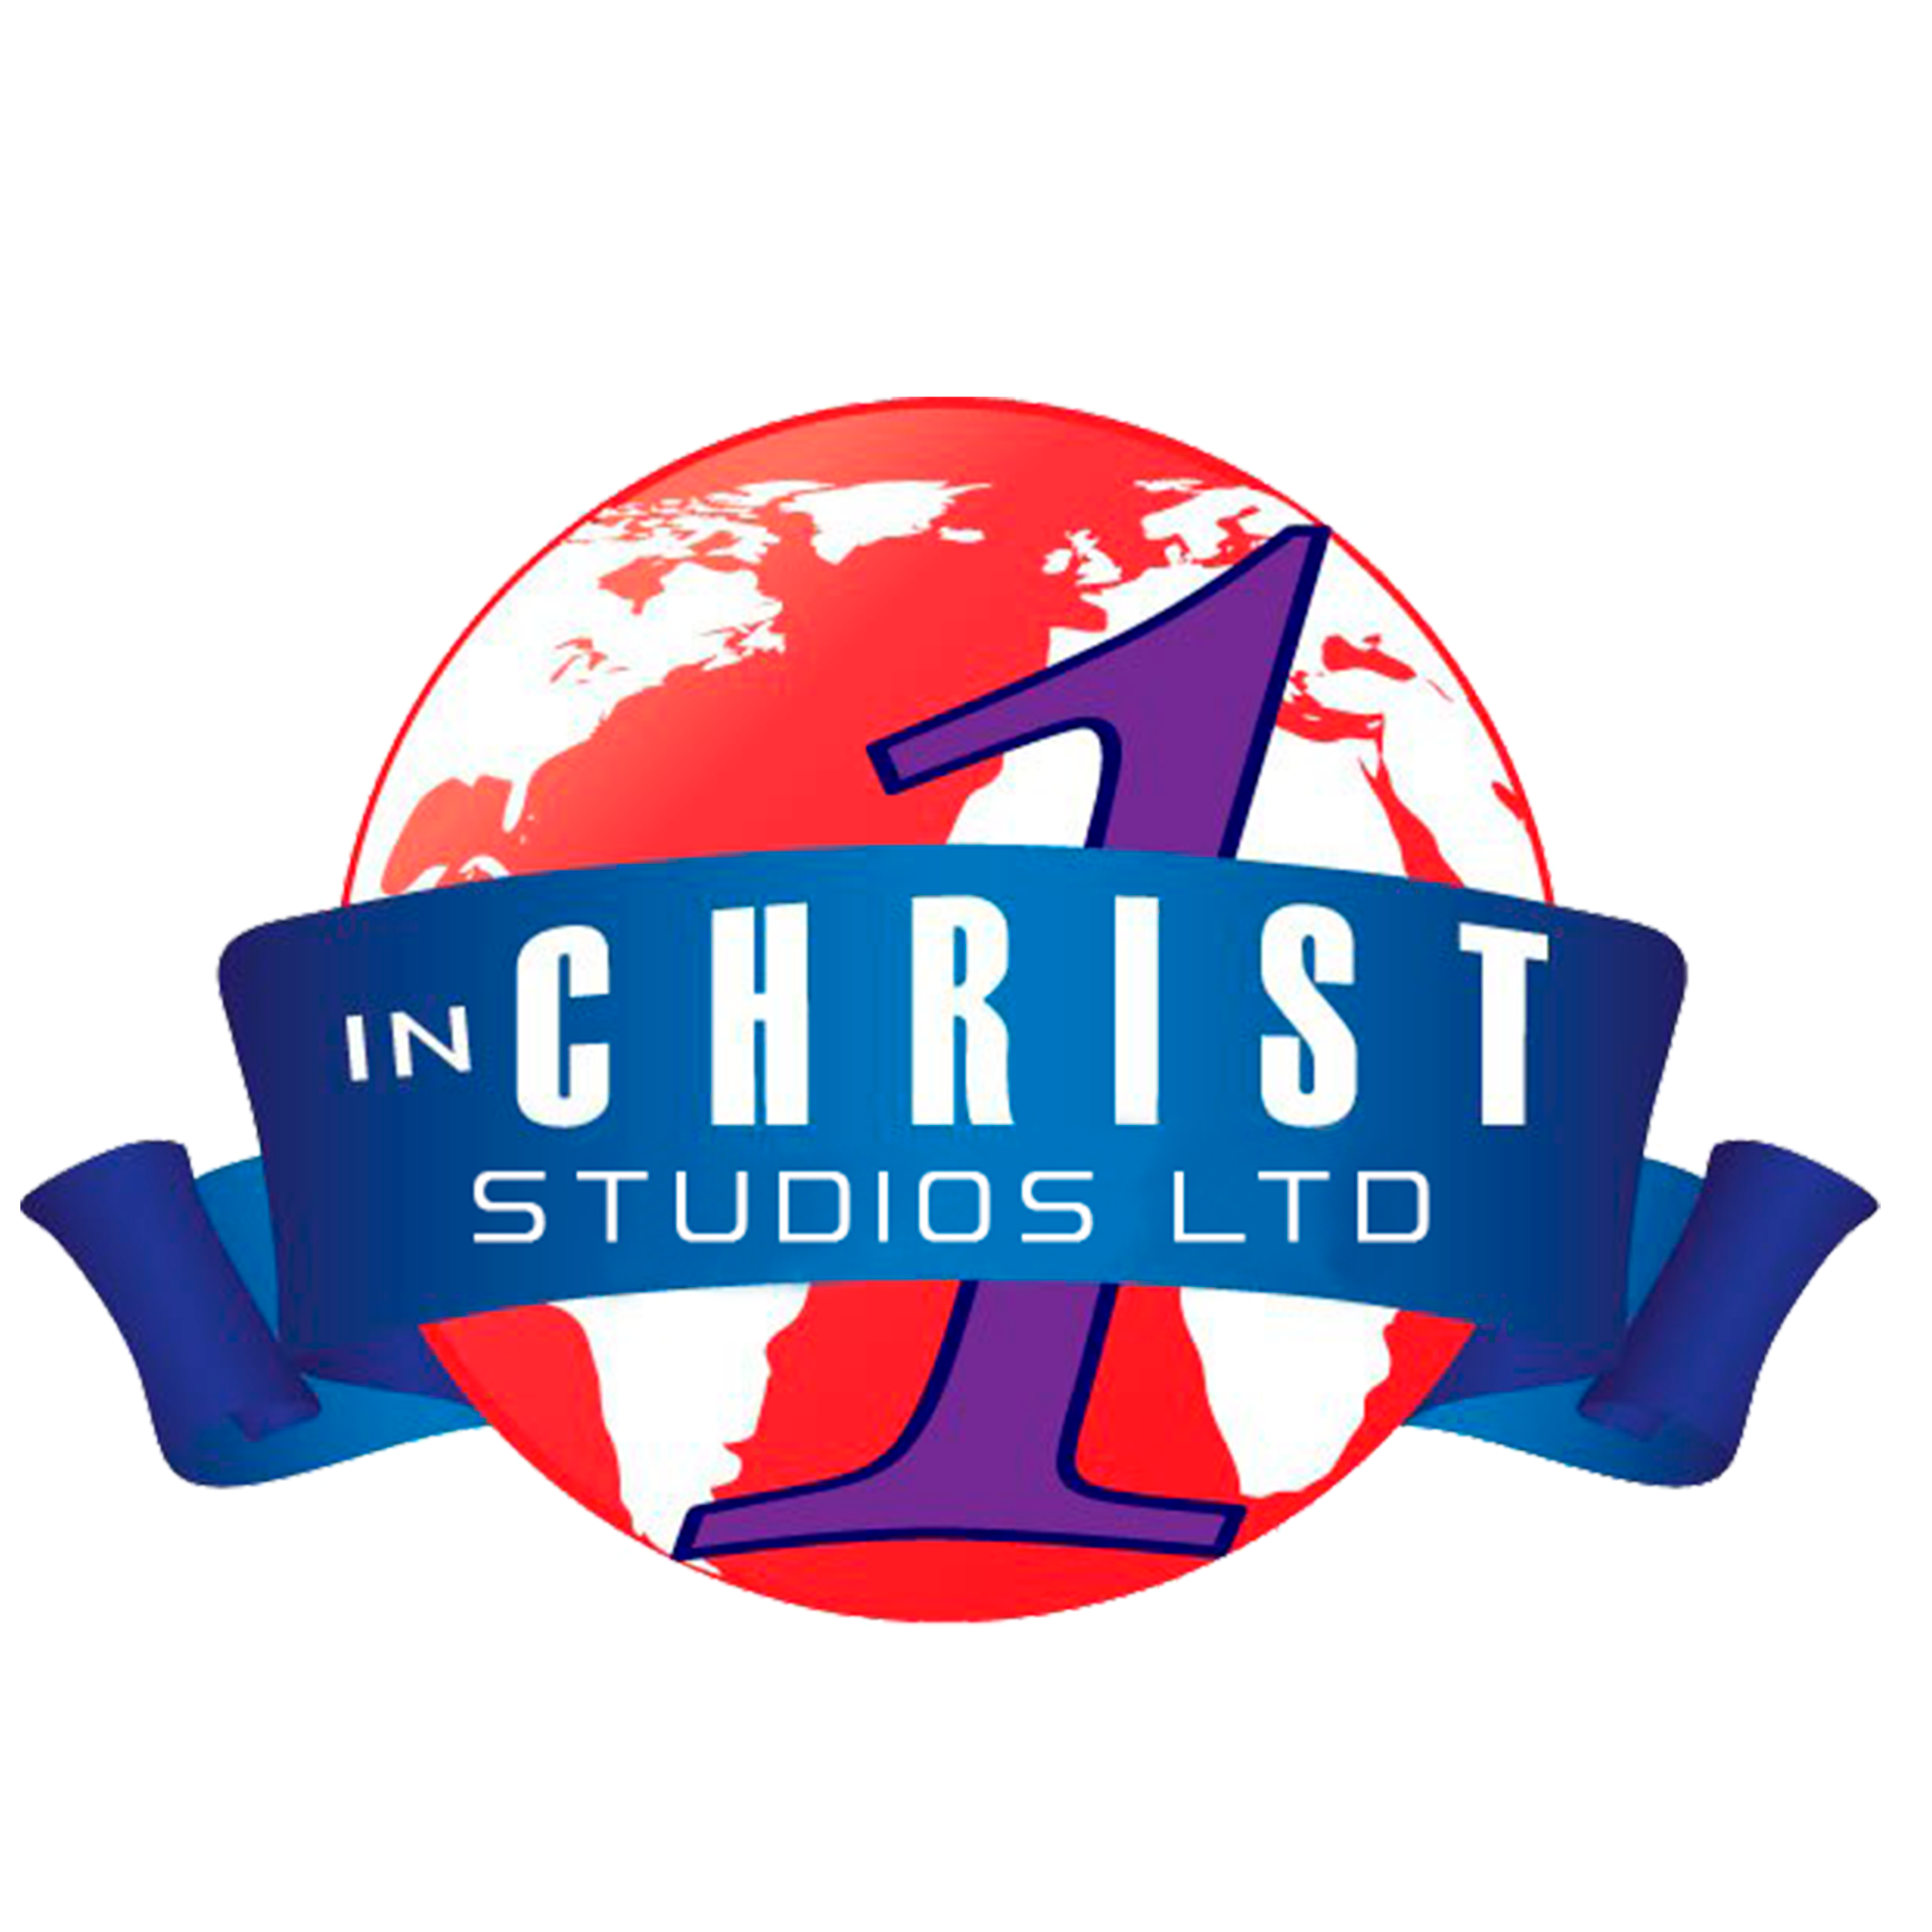 One in Christ Studios